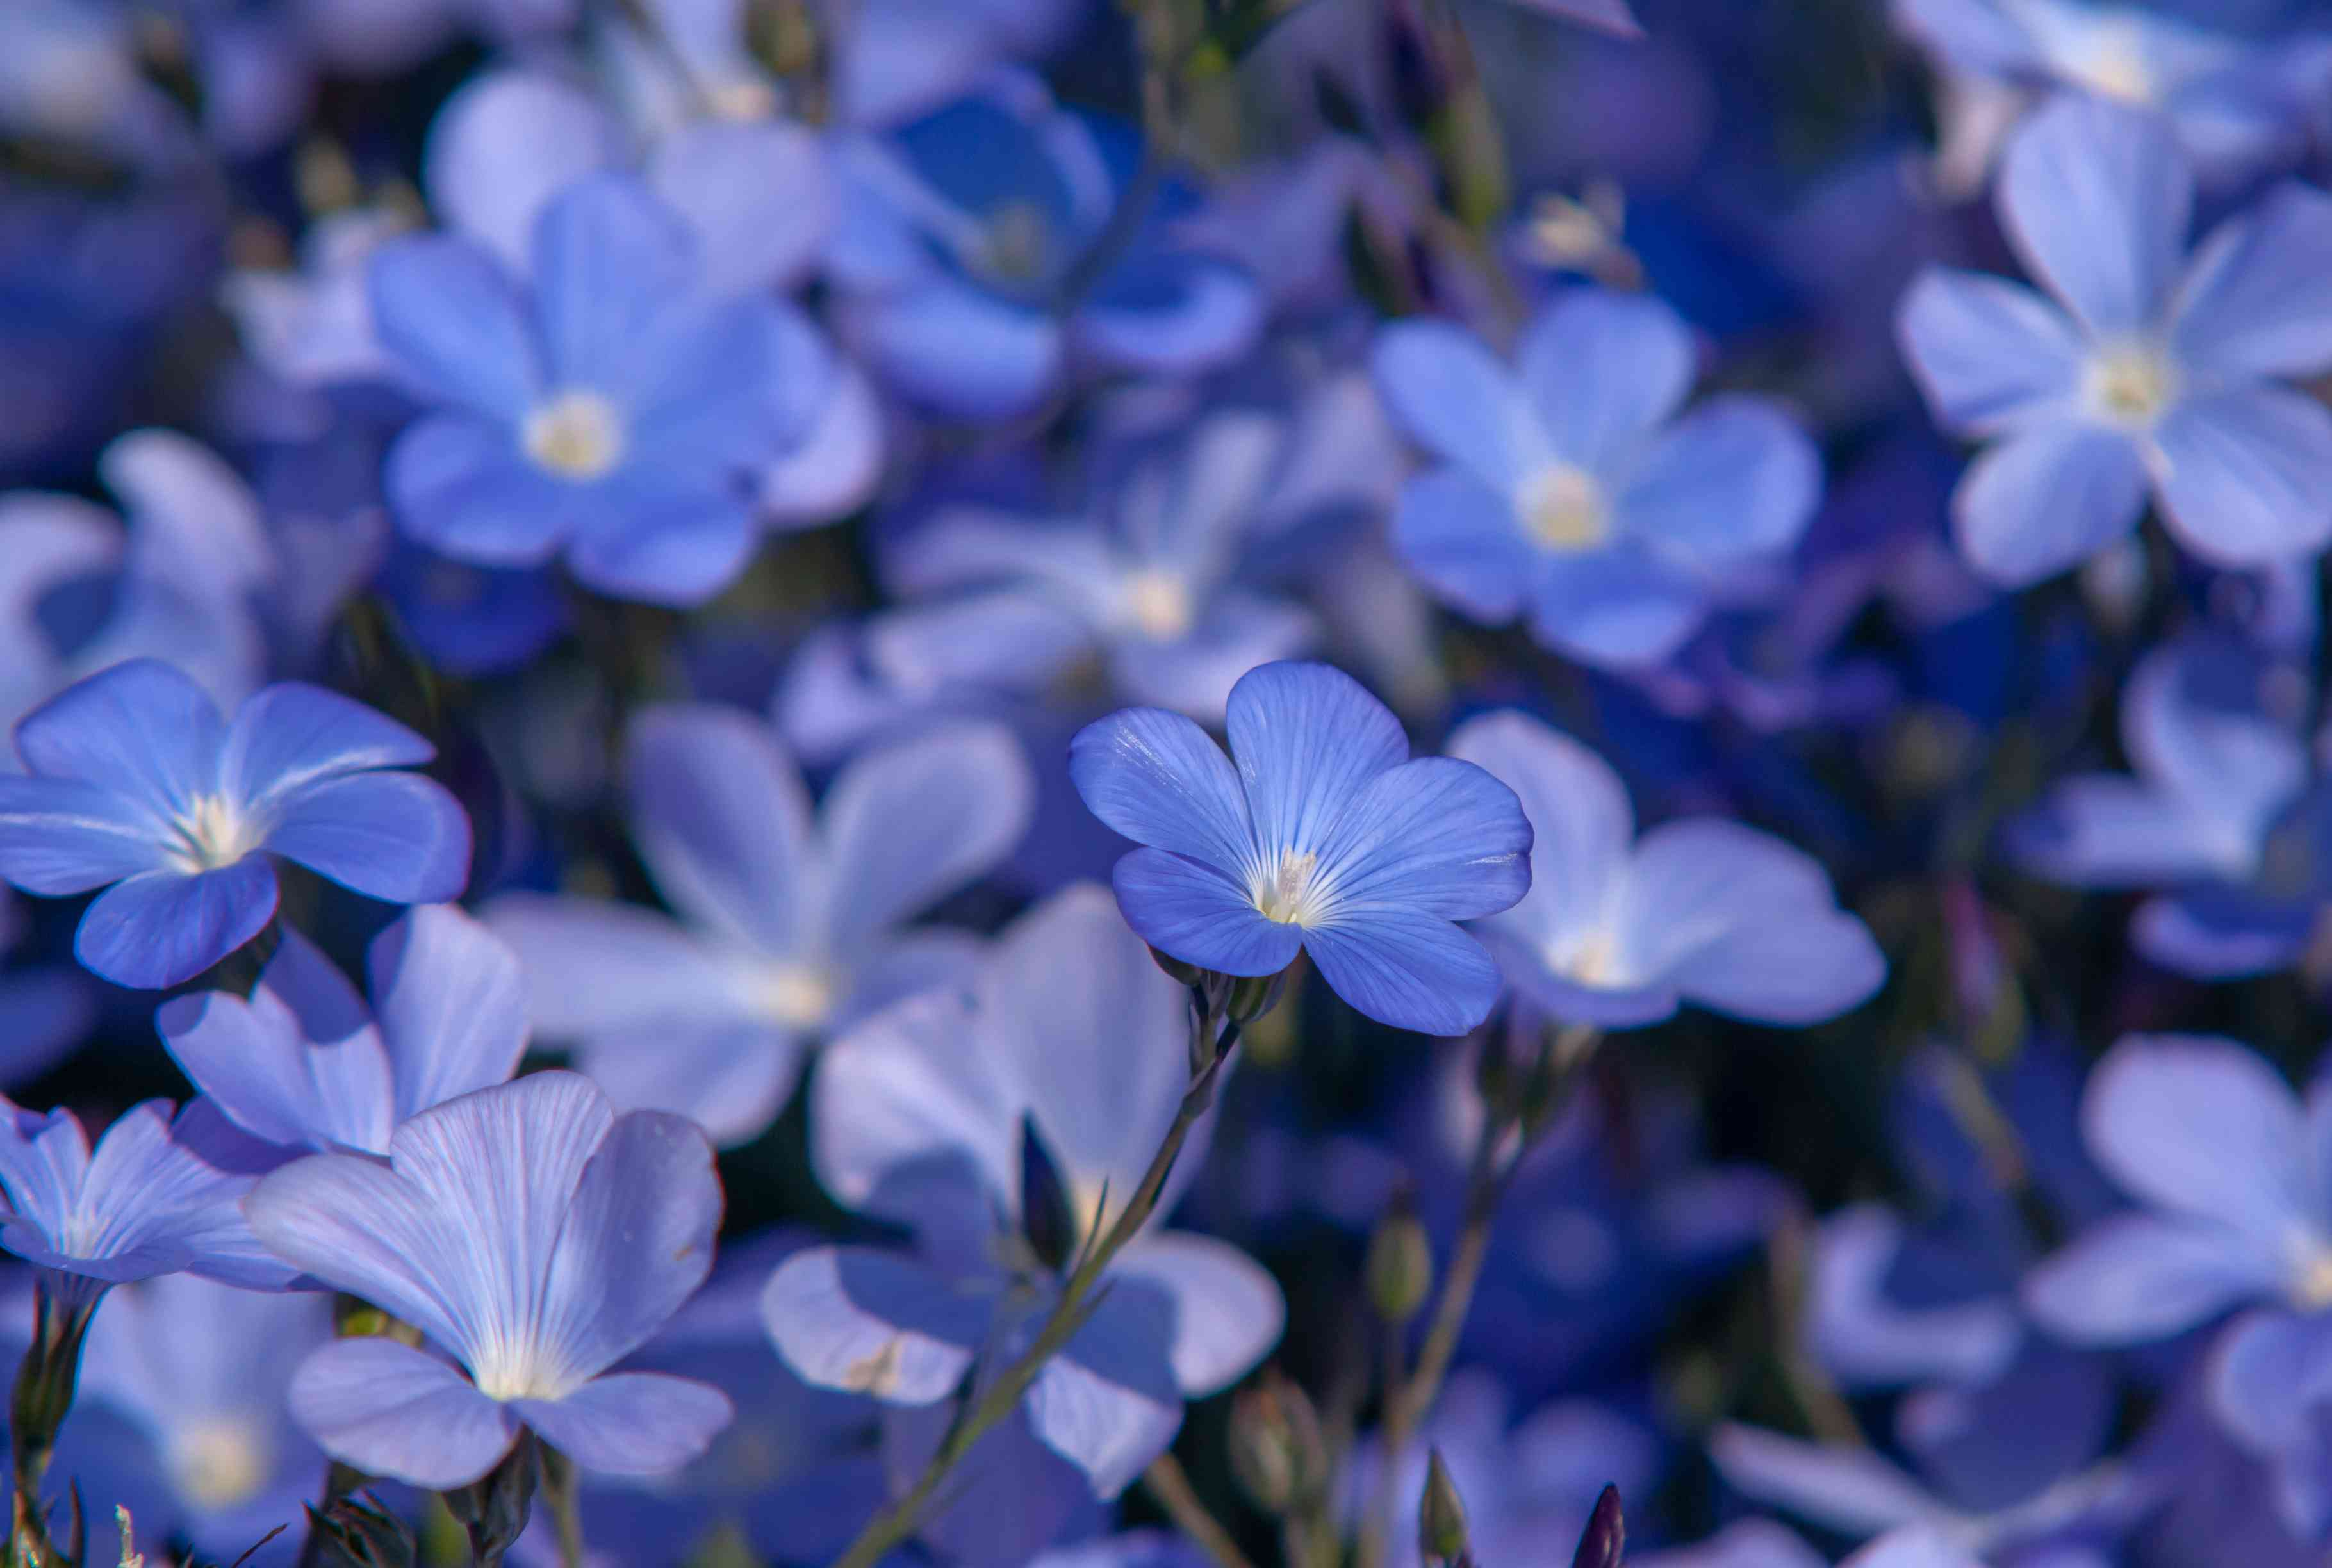 Flax plant blue flowers in a cluster closeup